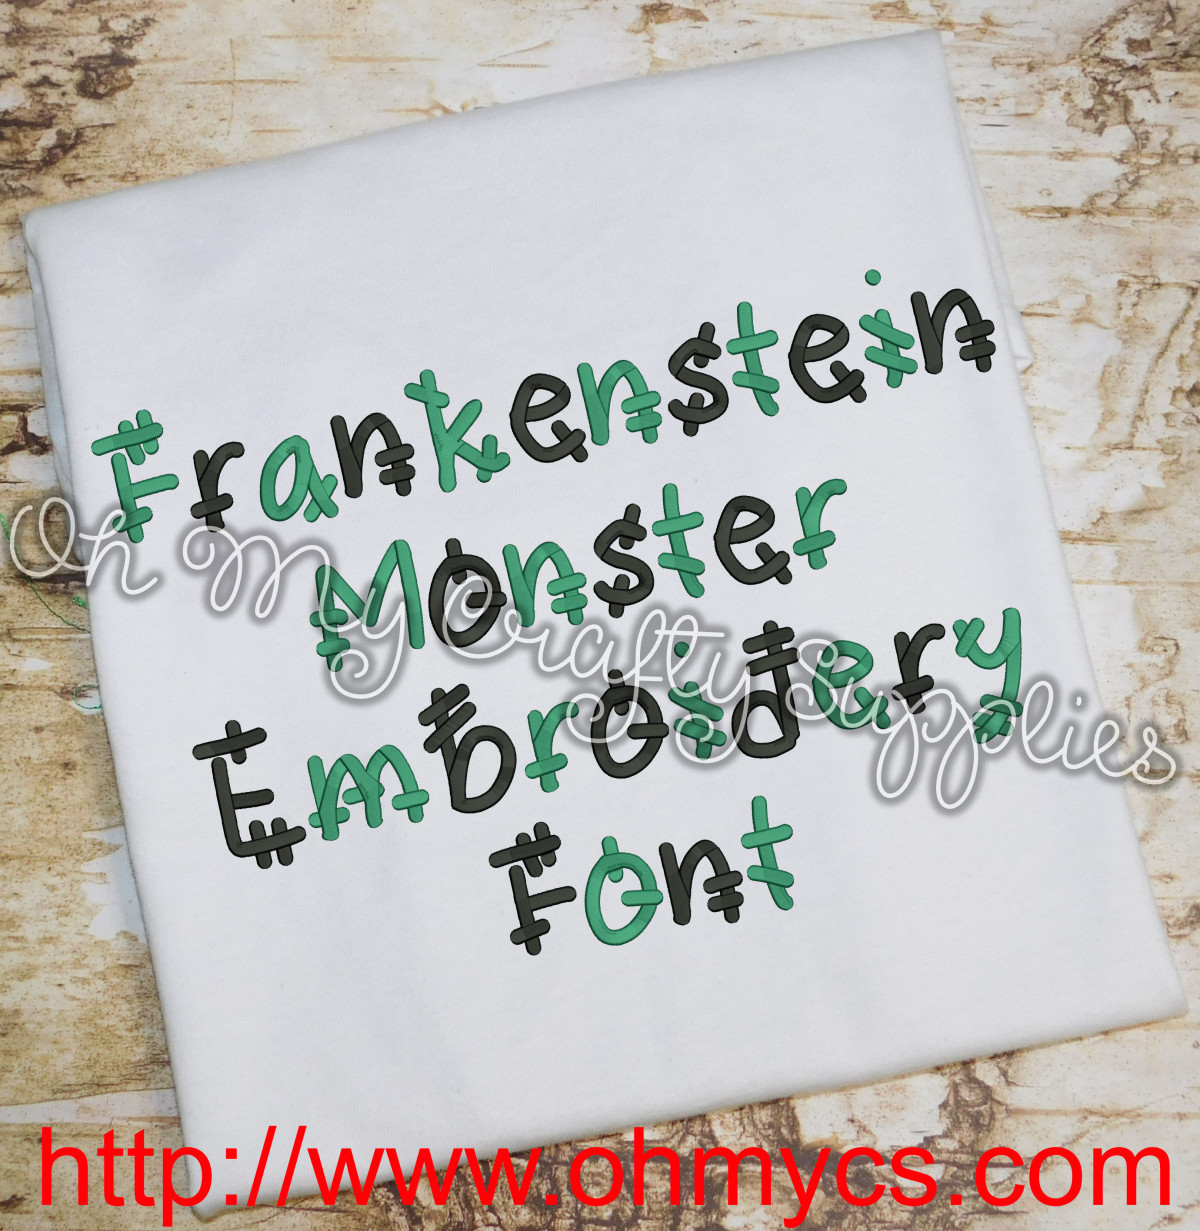 Frankenstein Monster Embroidery Font Bx Included All